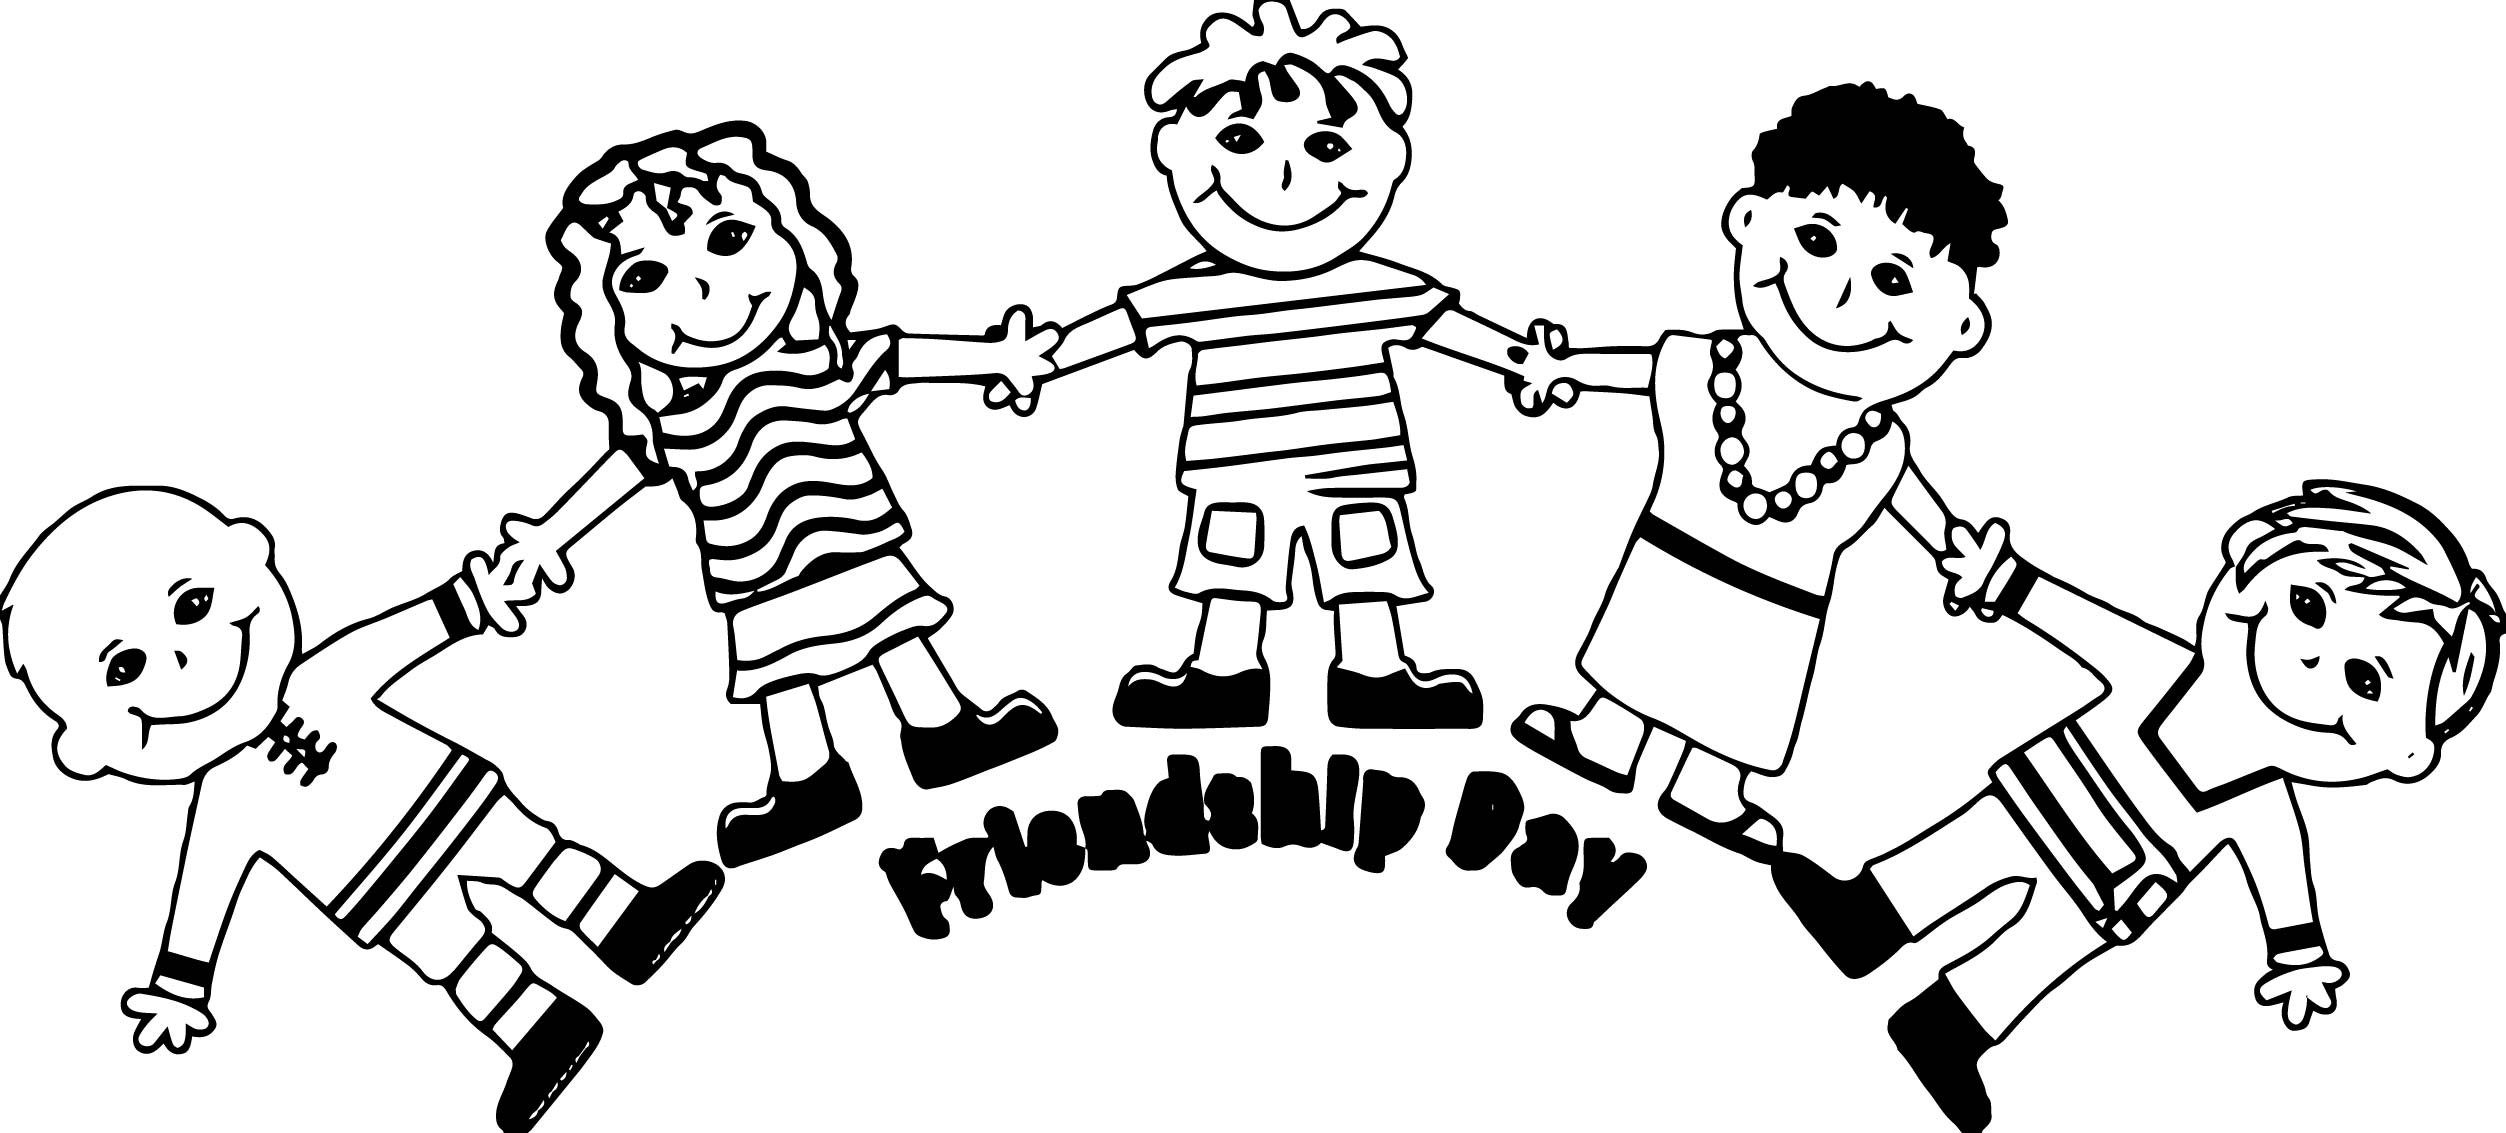 2506x1133 Friendship Coloring Page Free Draw To Color